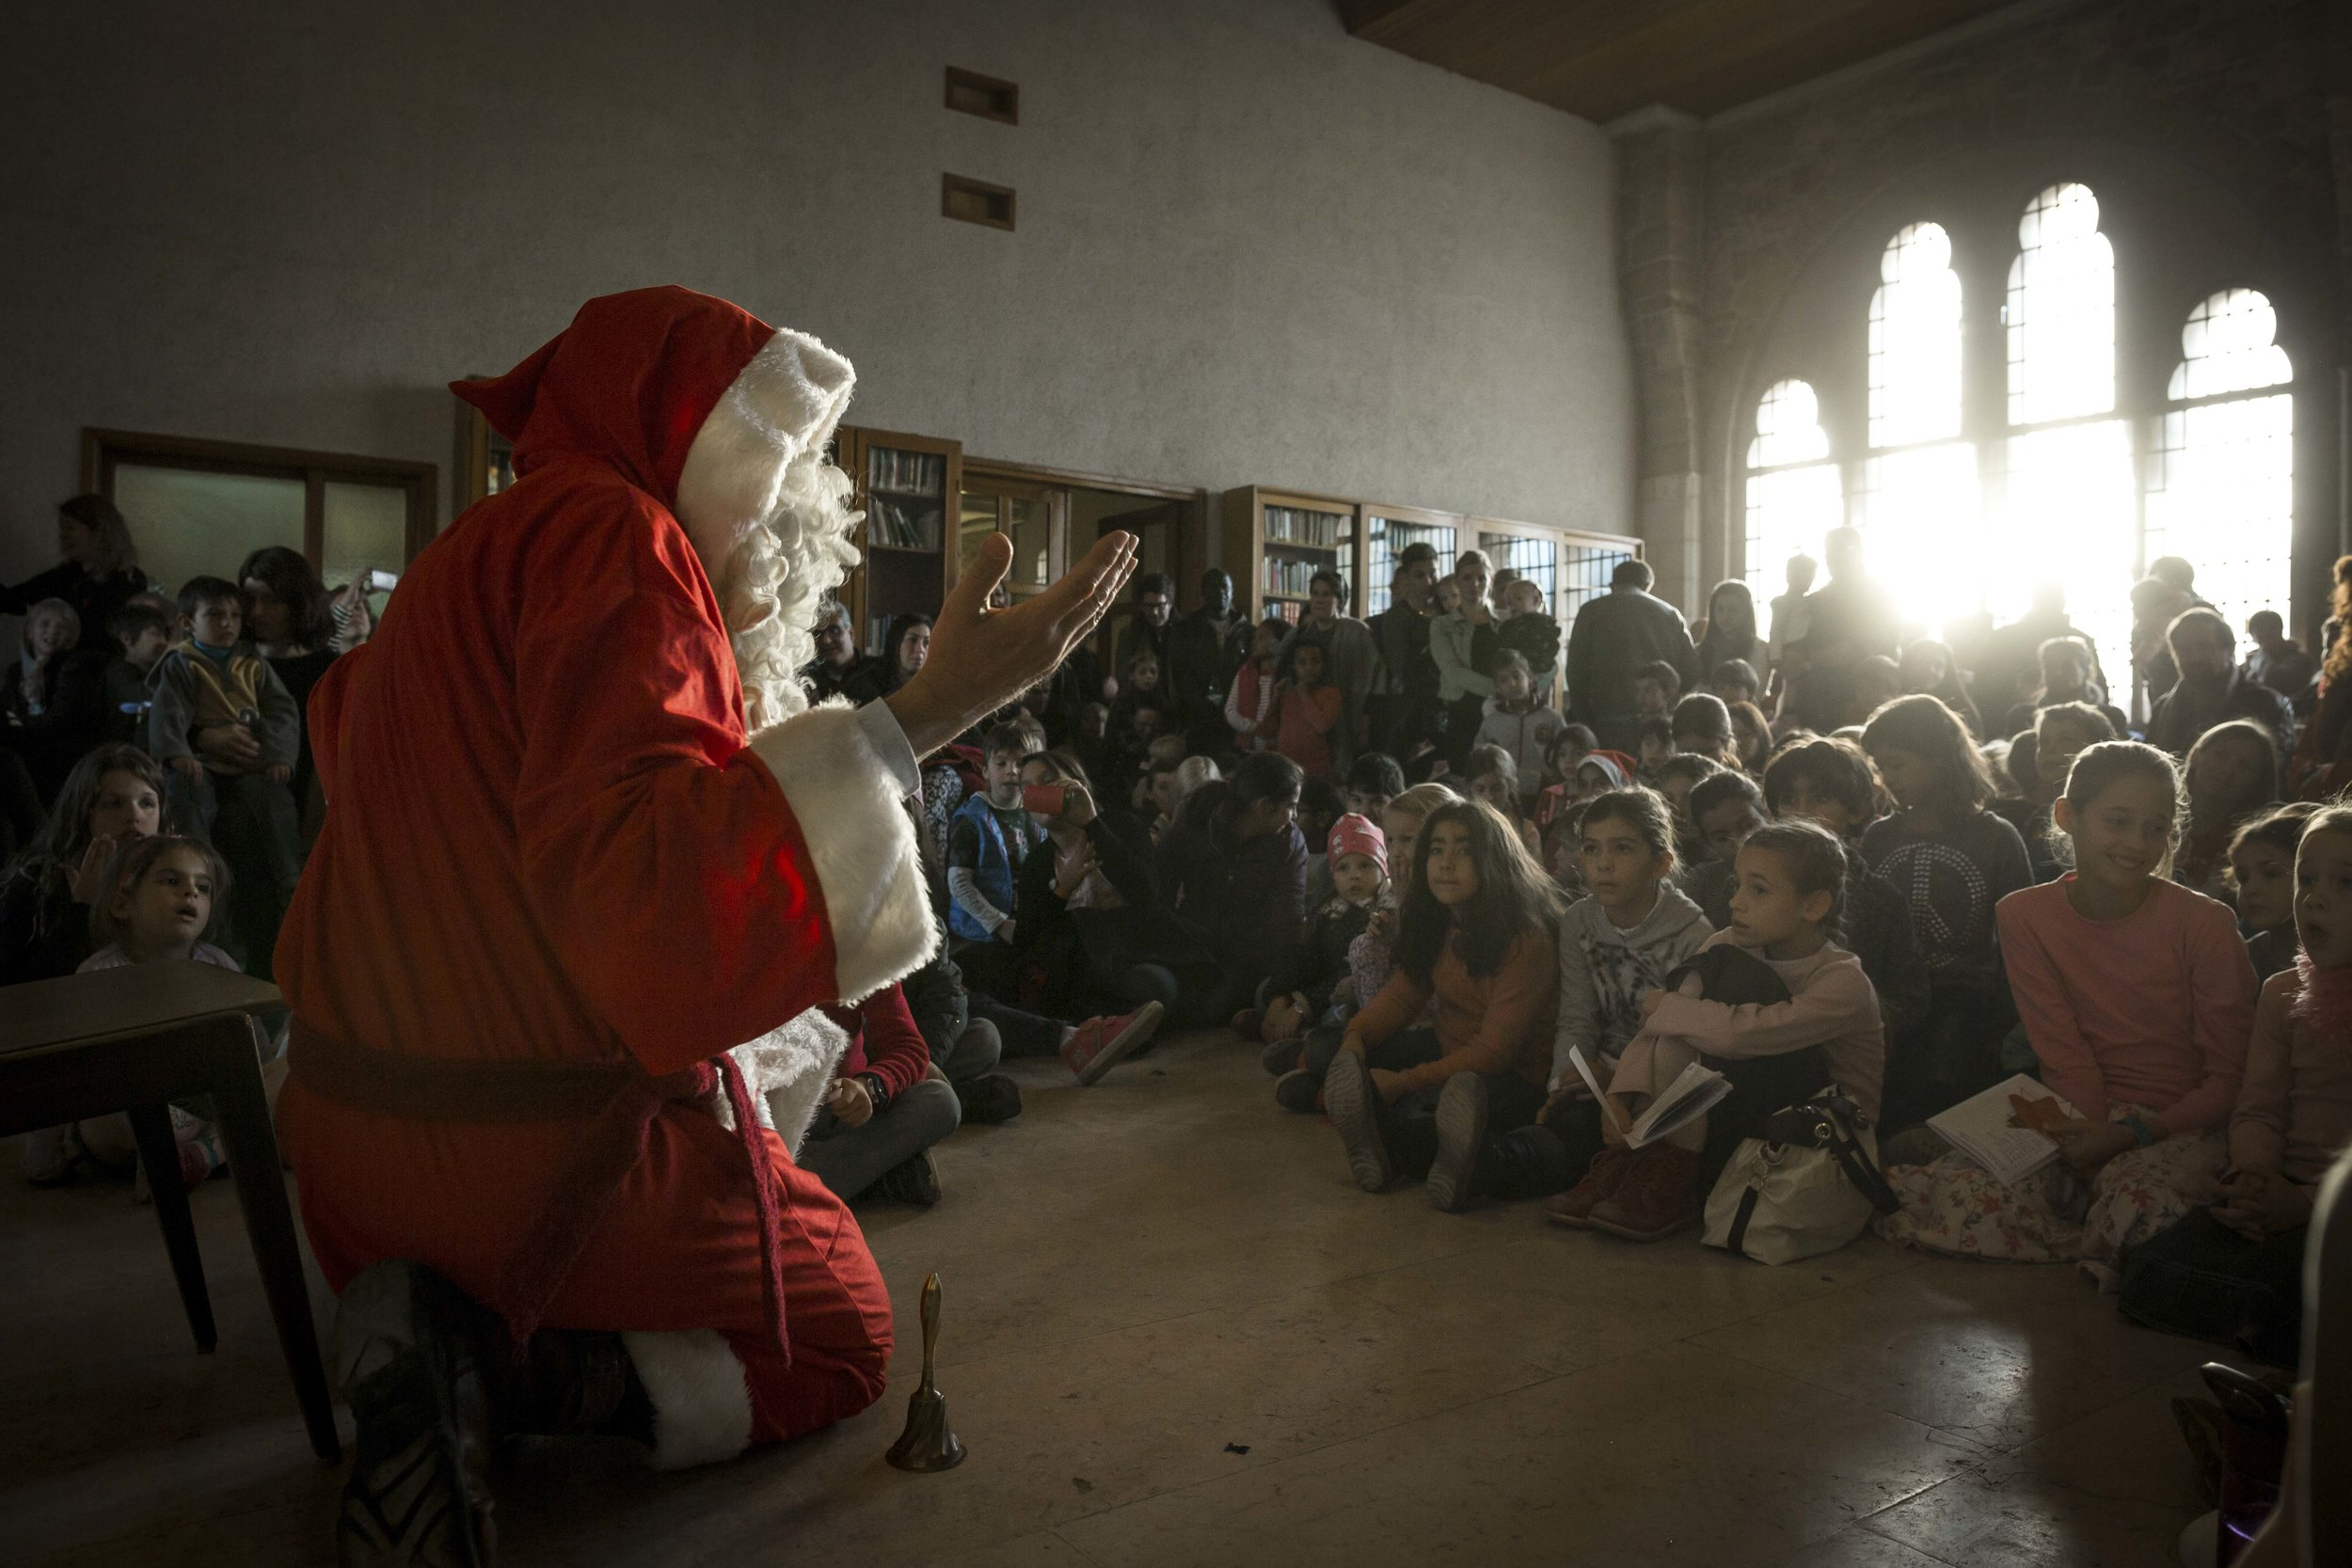 Propst Wolfgang Schmidt performs a pre Saint Nicolaus day in front of young children in the Church of the Redeemer in Jerusalem's Old City.